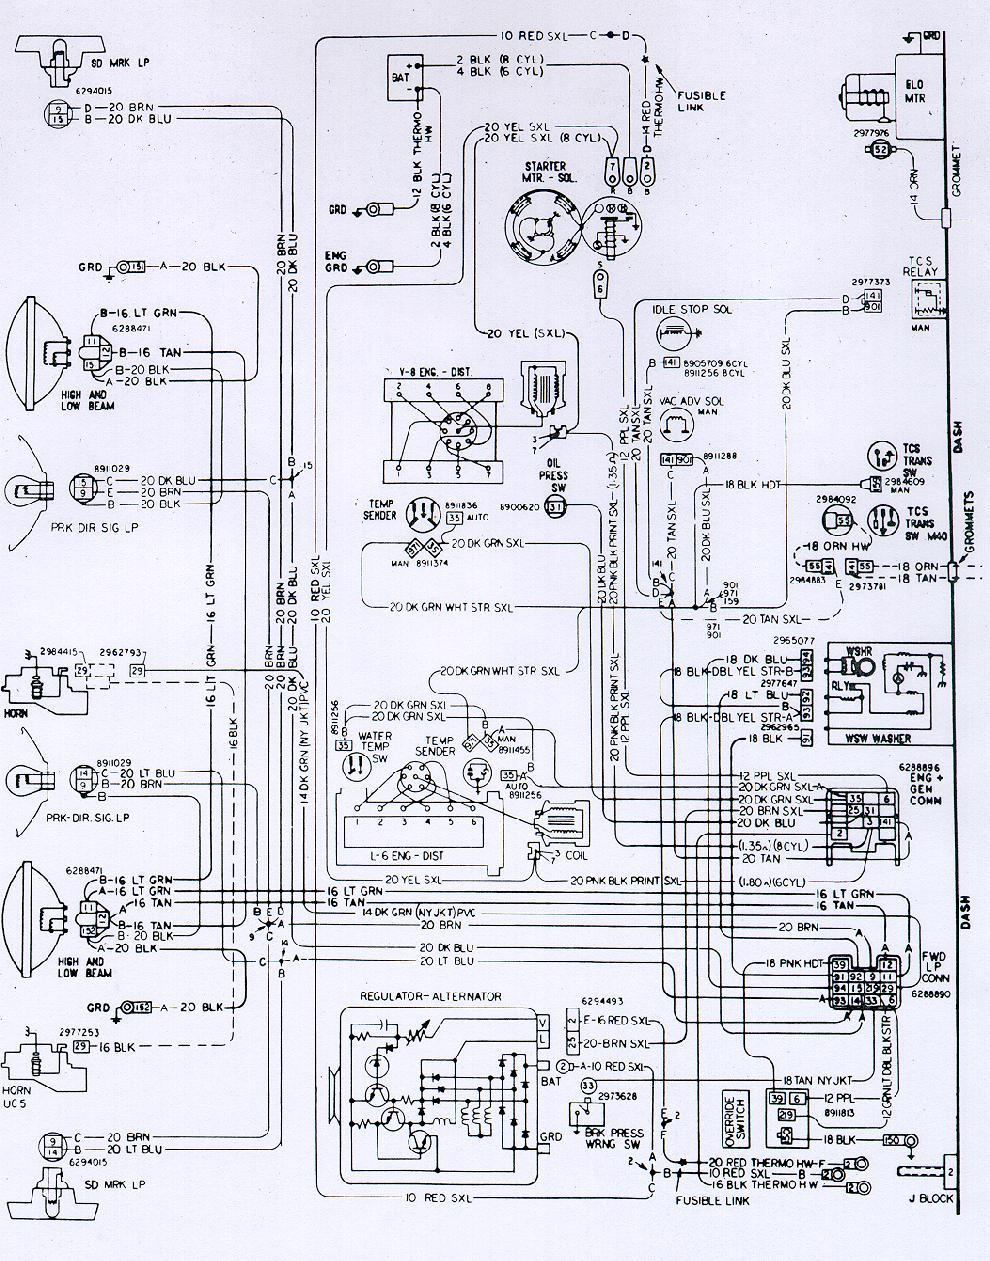 hight resolution of 1973 chevy camaro wiring diagram wiring diagram rows wiring diagrams for 1970 chevy camaro